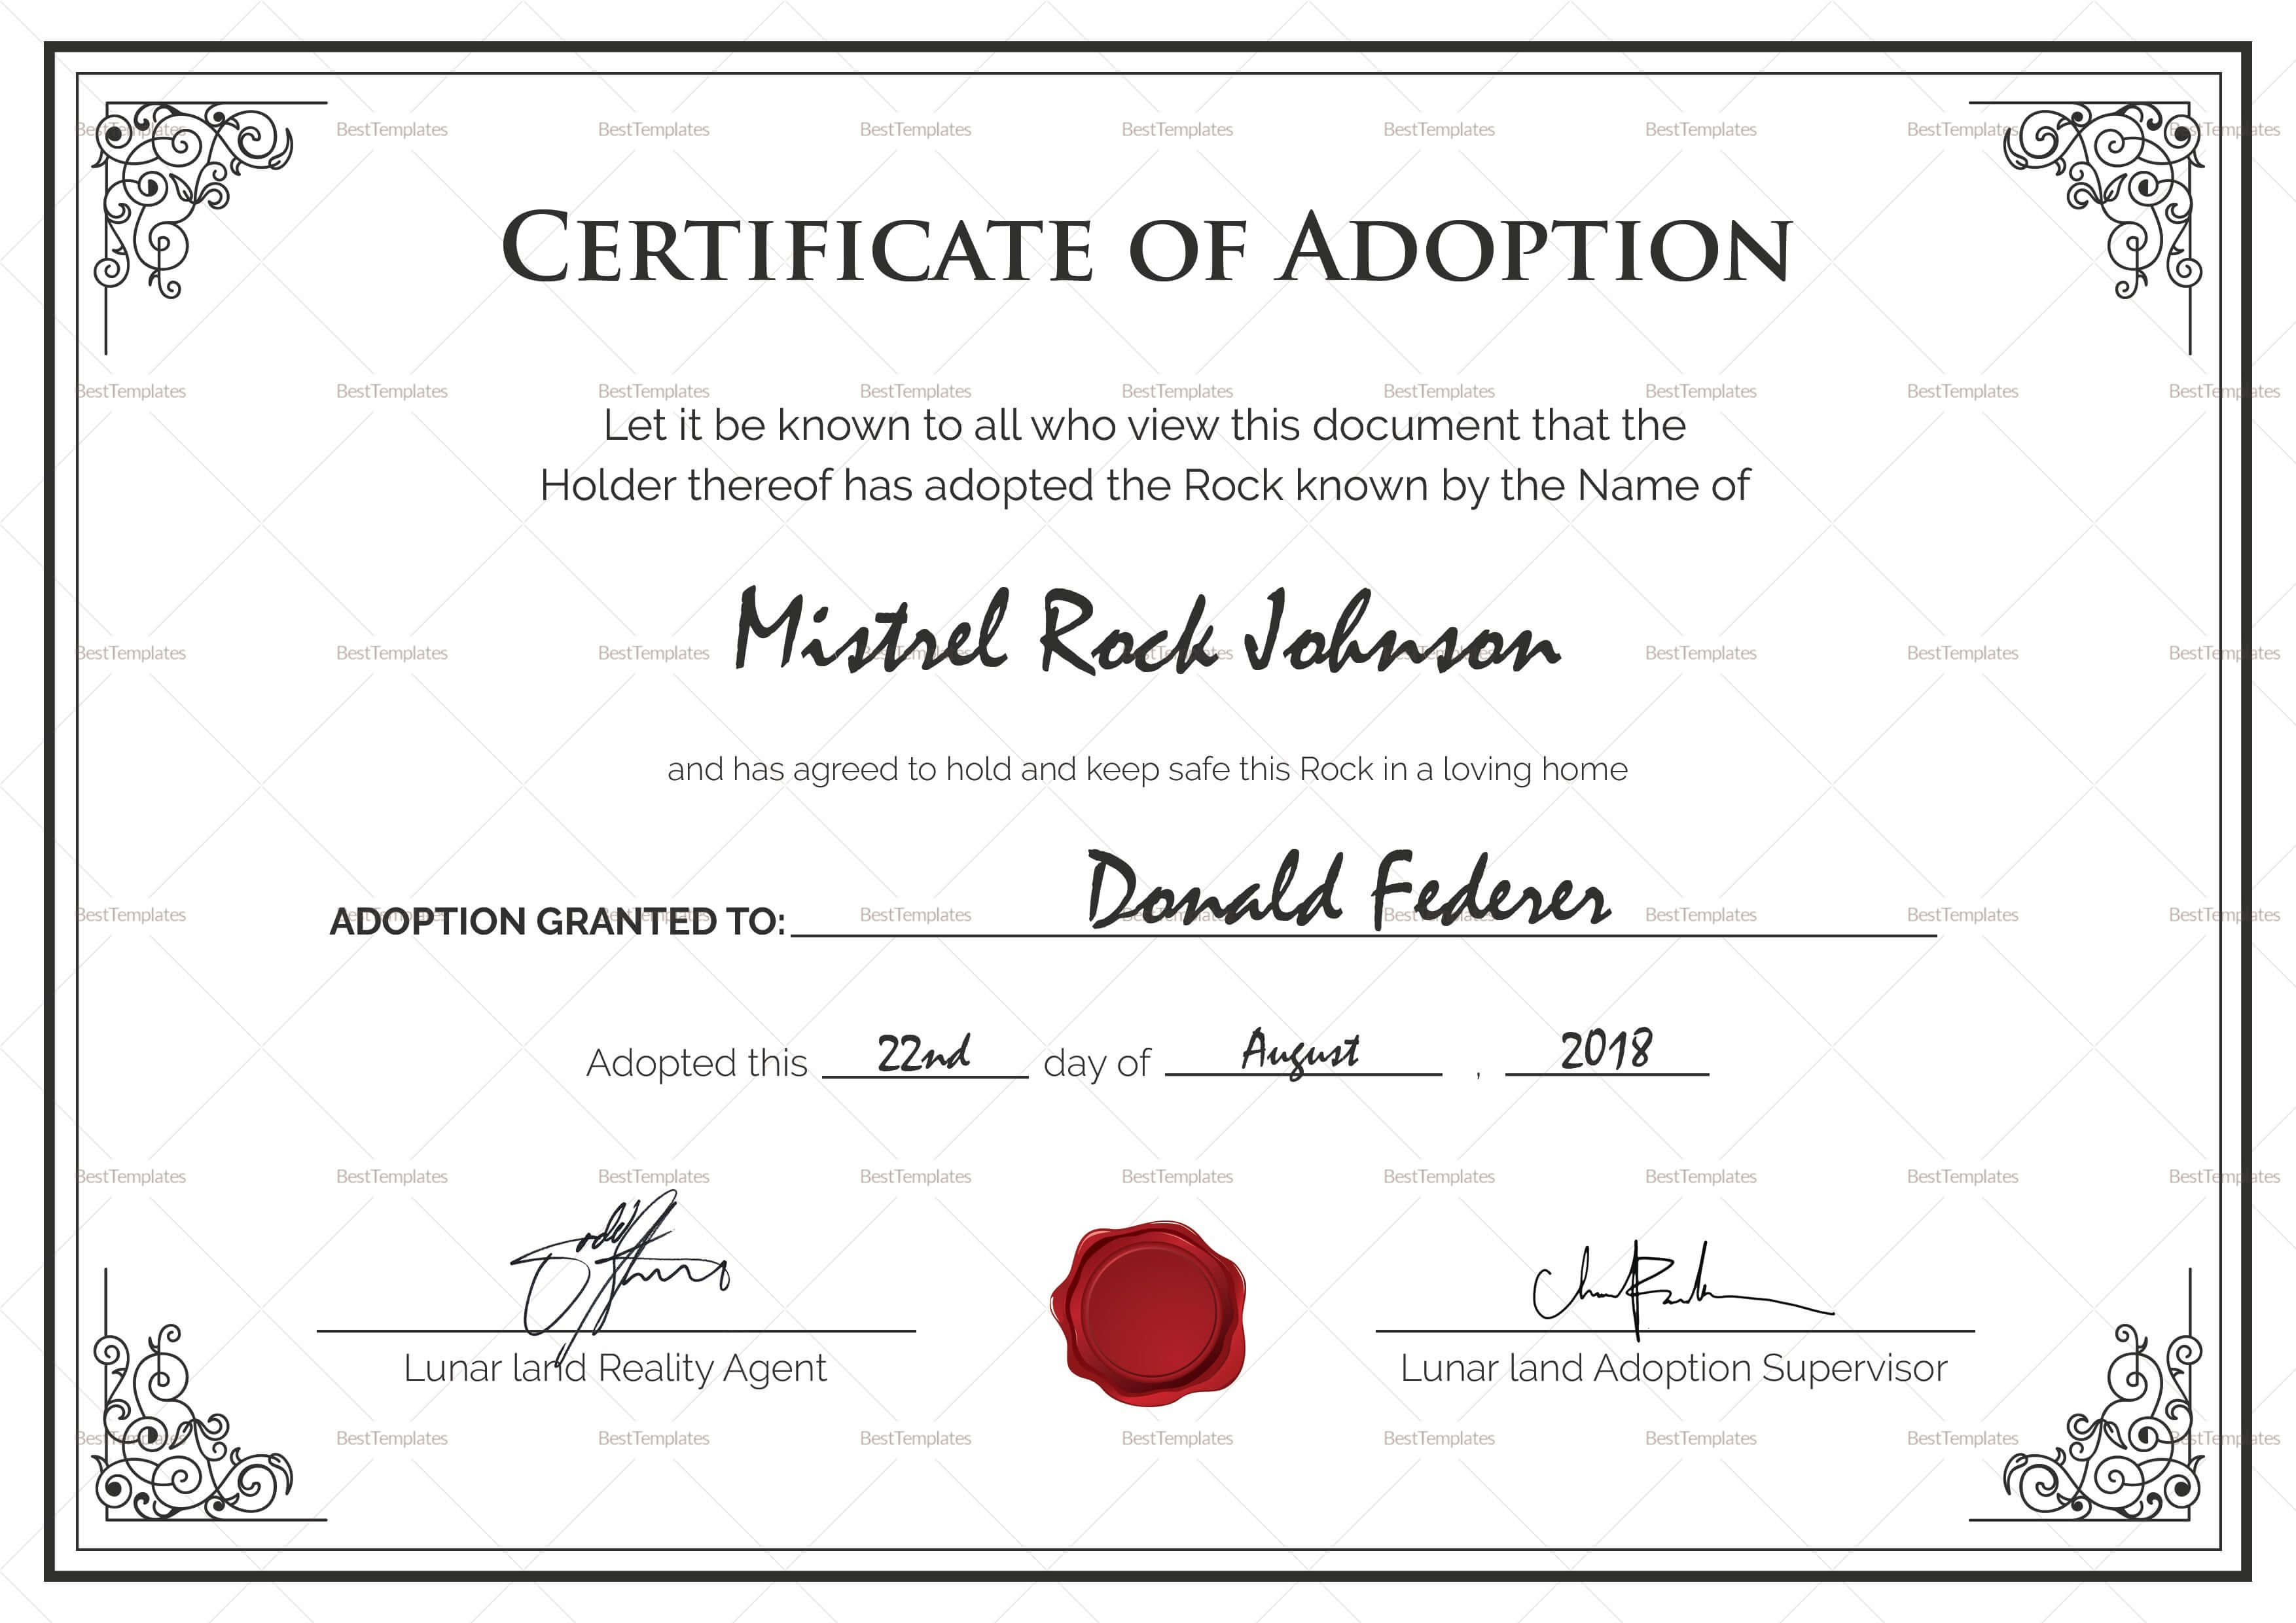 Pincheryl Wood On Interesting Info | Certificate for Adoption Certificate Template